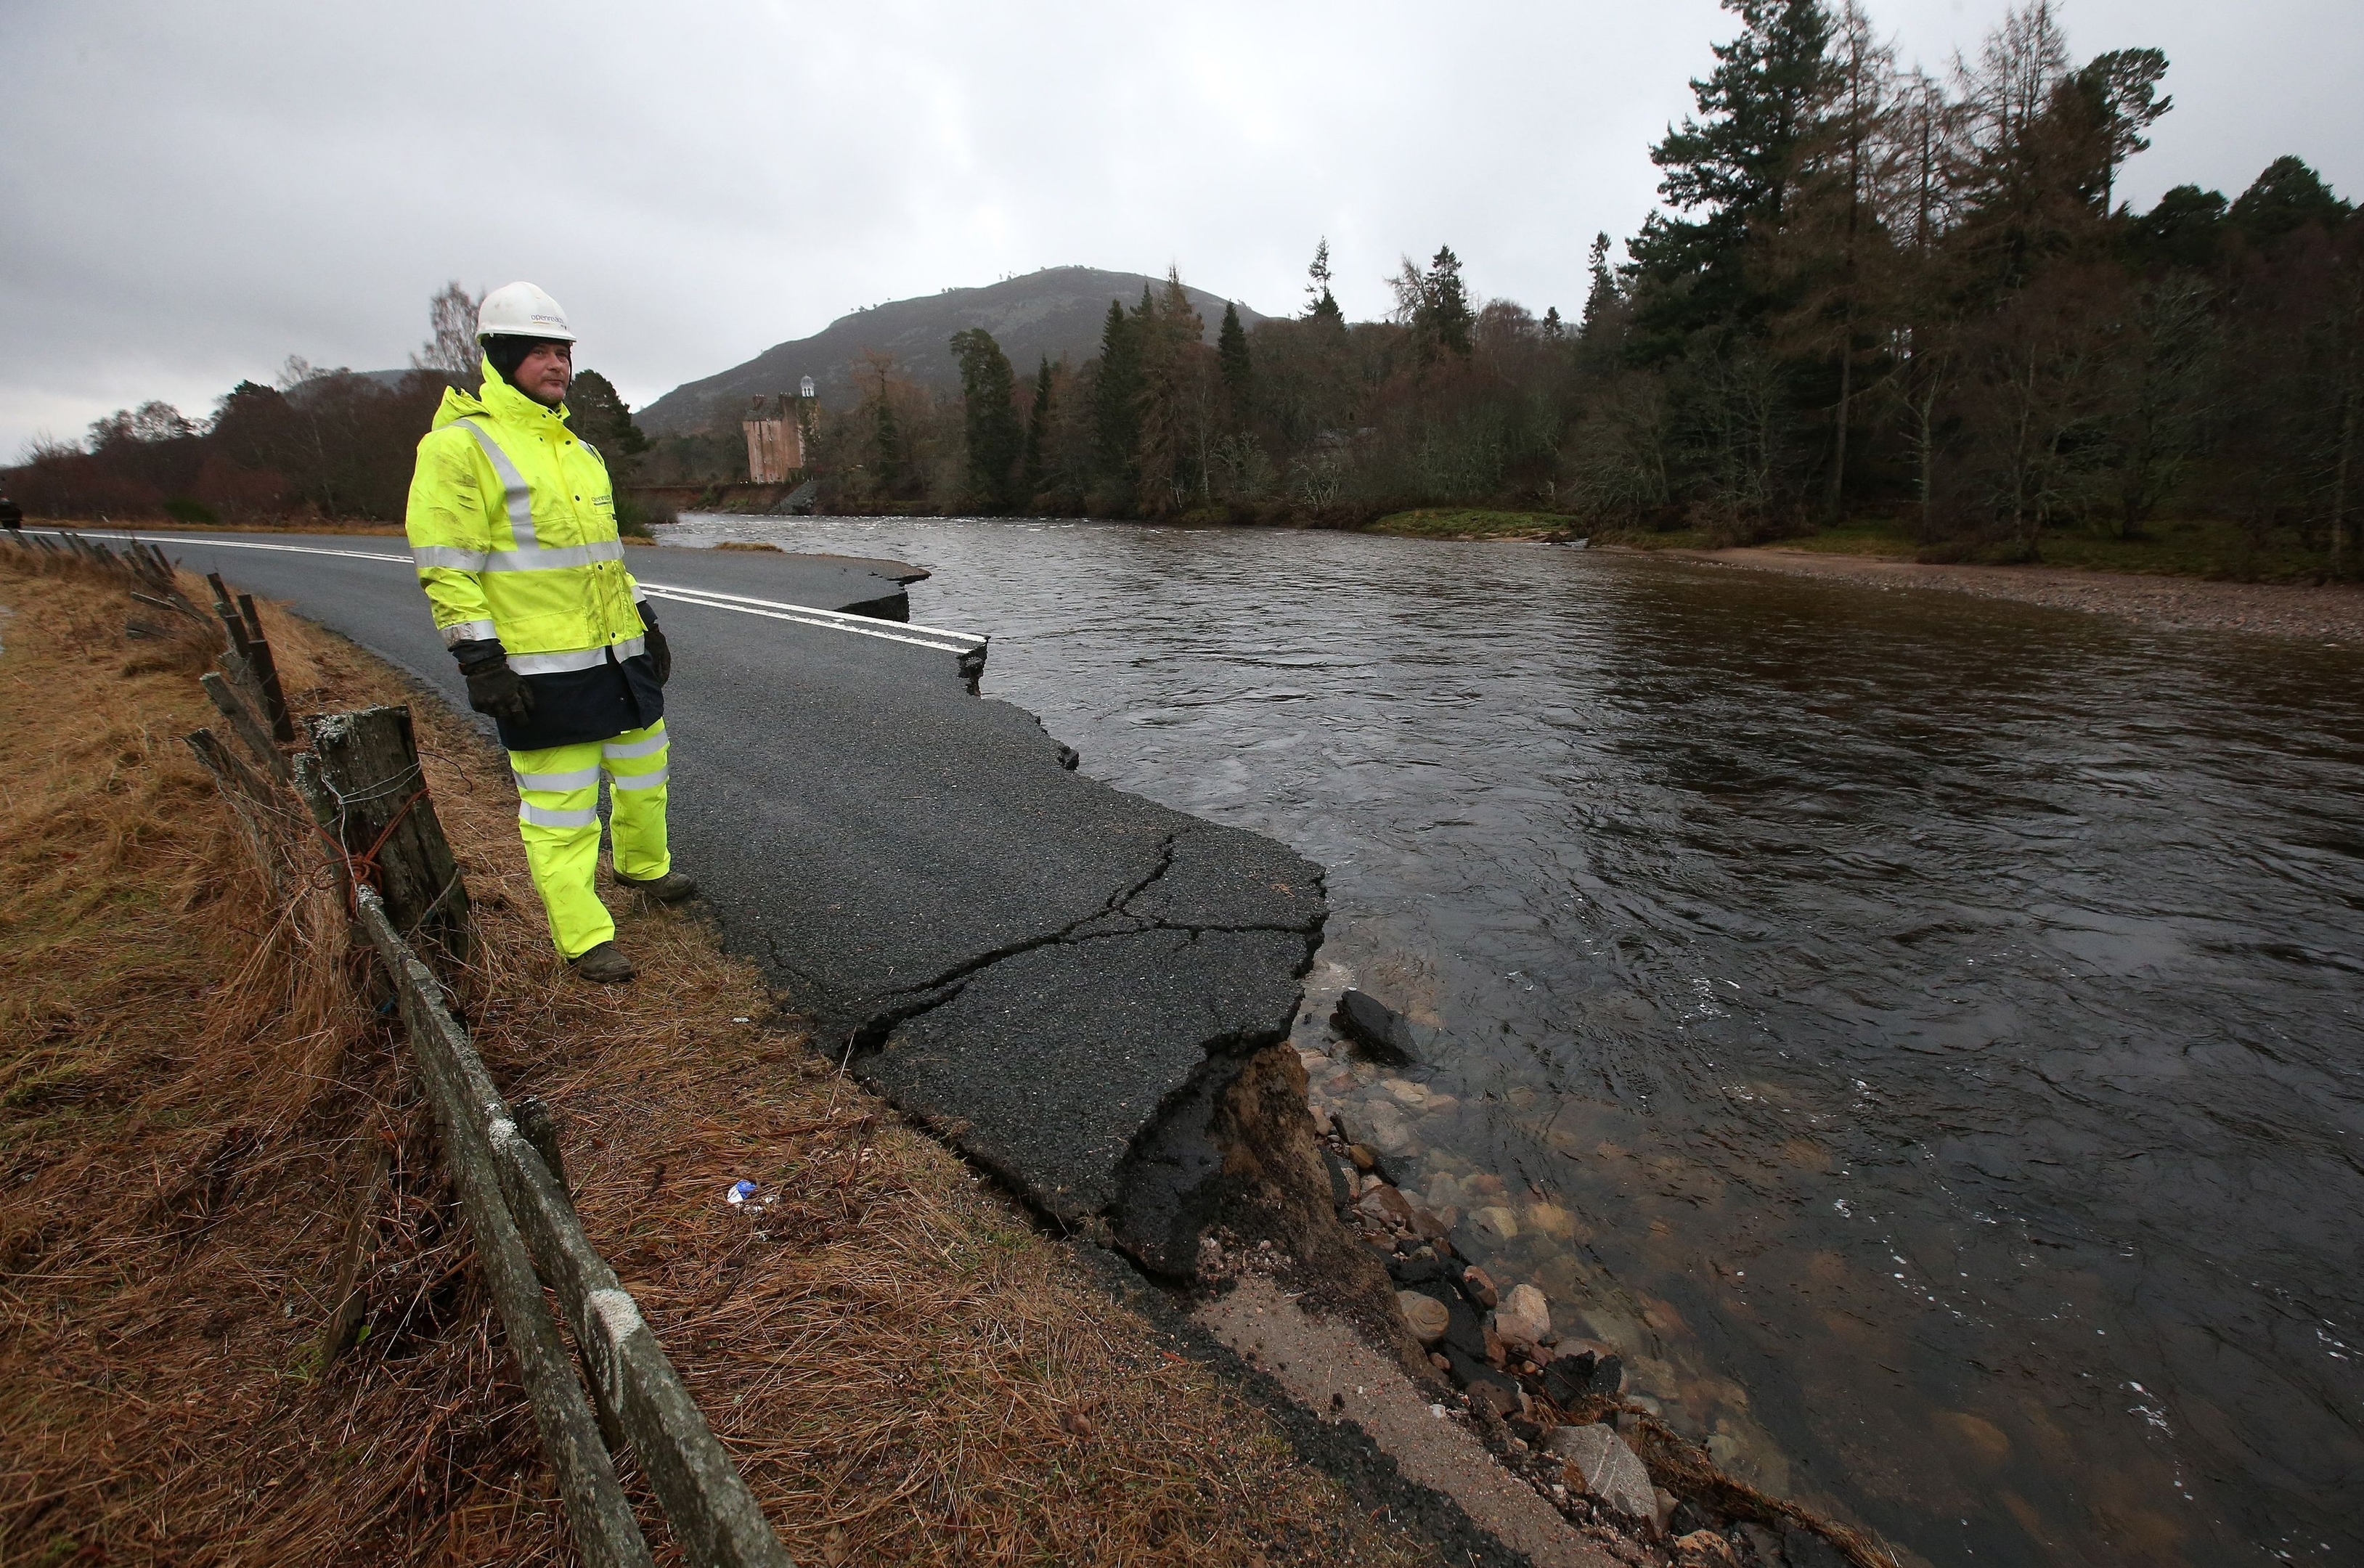 BT Engineers view the damage on the A93 Ballater to Braemar road after the River Dee washed it away in storms last week. PRESS ASSOCIATION Photo. Picture date: Wednesday January 6, 2016. Photo credit should read: Andrew Milligan/PA Wire